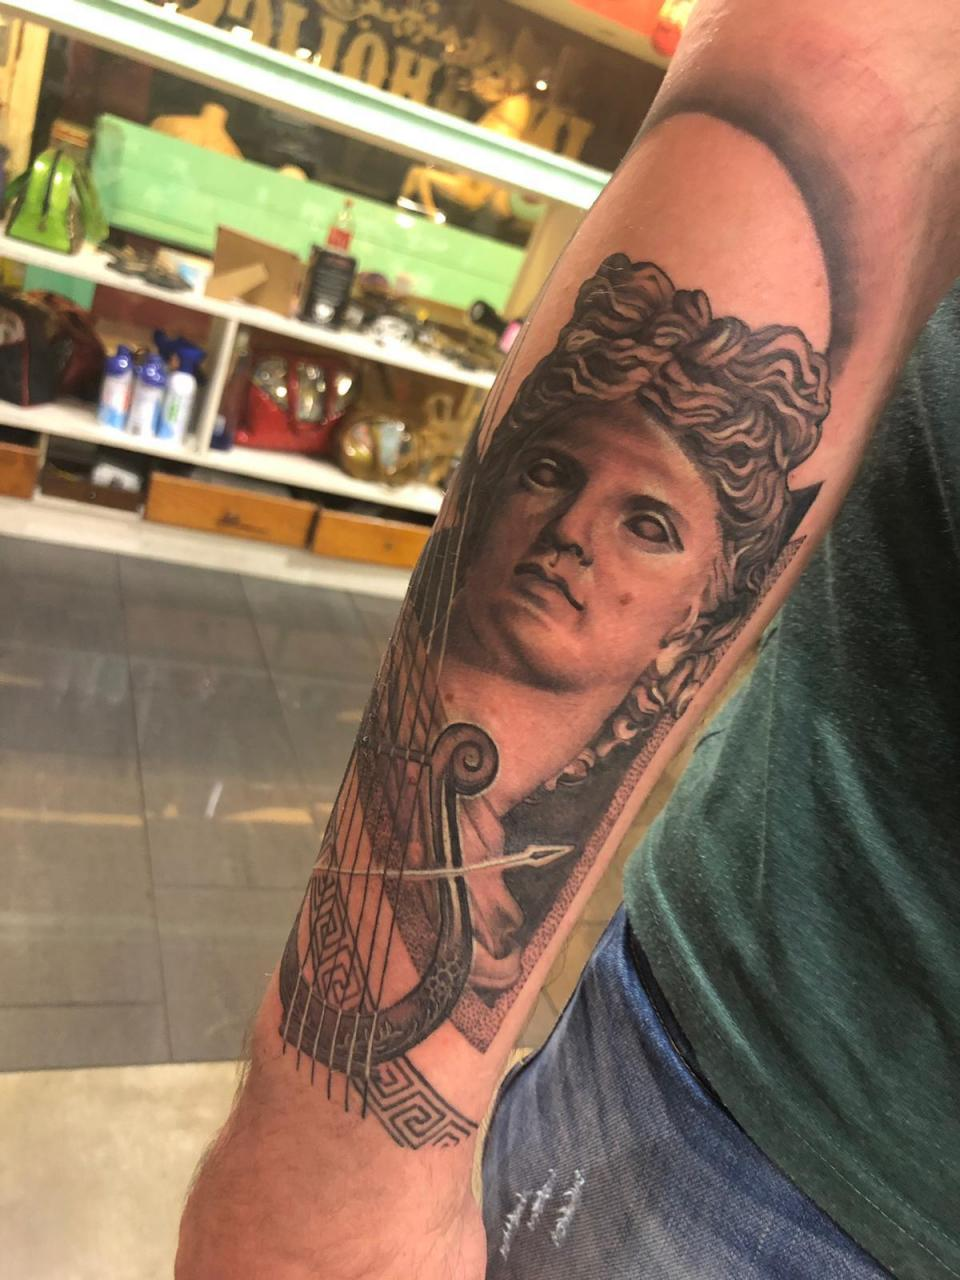 Got this tattoo of the greek god apollo a few months back. Looking to continue at other spots on my arm, any ideas or suggestions?